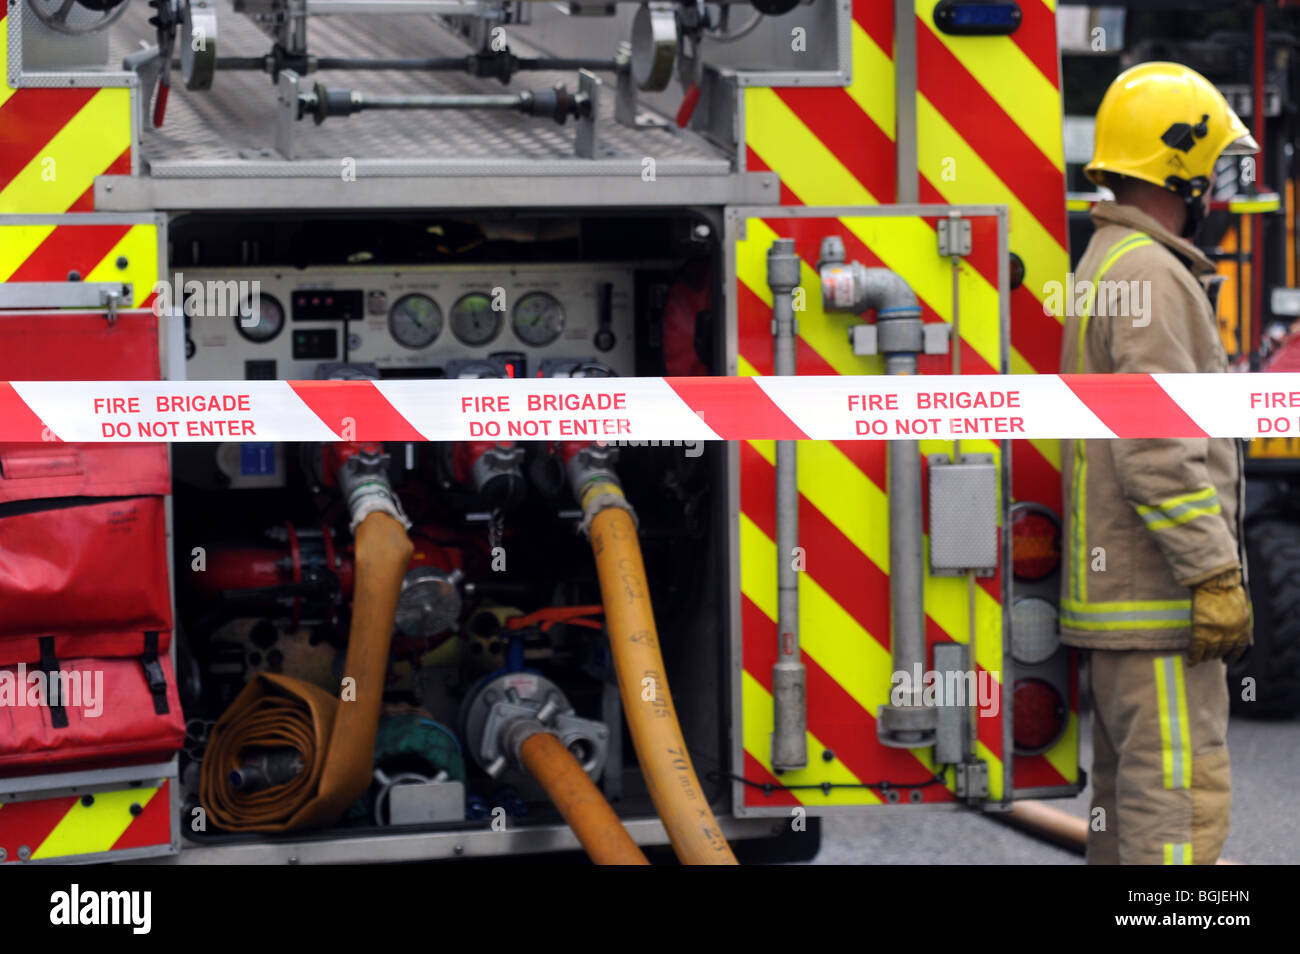 Fire brigade at on the scene of a major incident - Stock Image